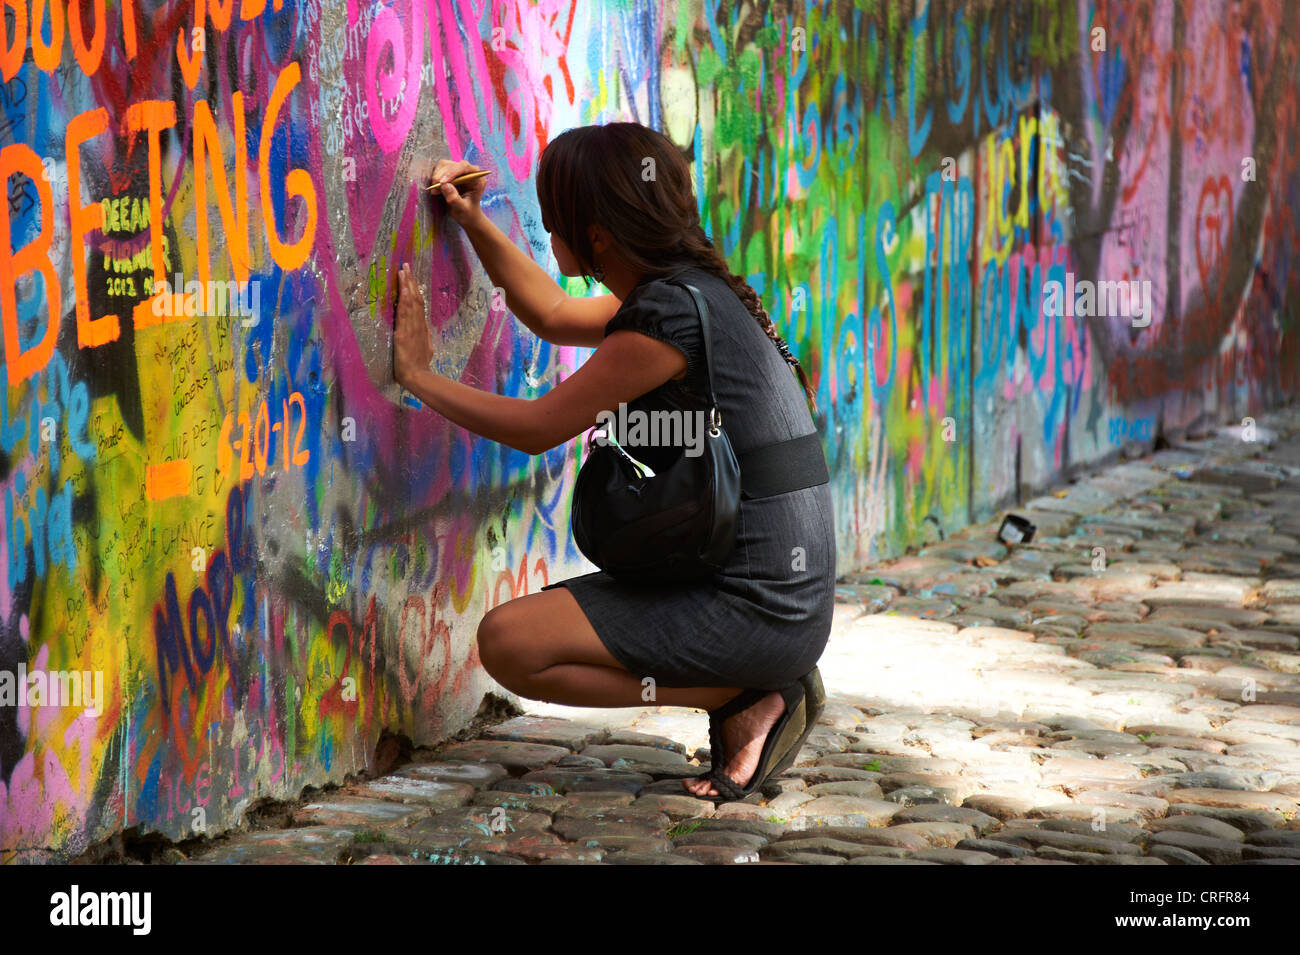 Graffiti wall painting - Stock Photo The John Lennon Graffiti Wall In Prague Czech Republic Tourist Woman Painting And Writing Testament